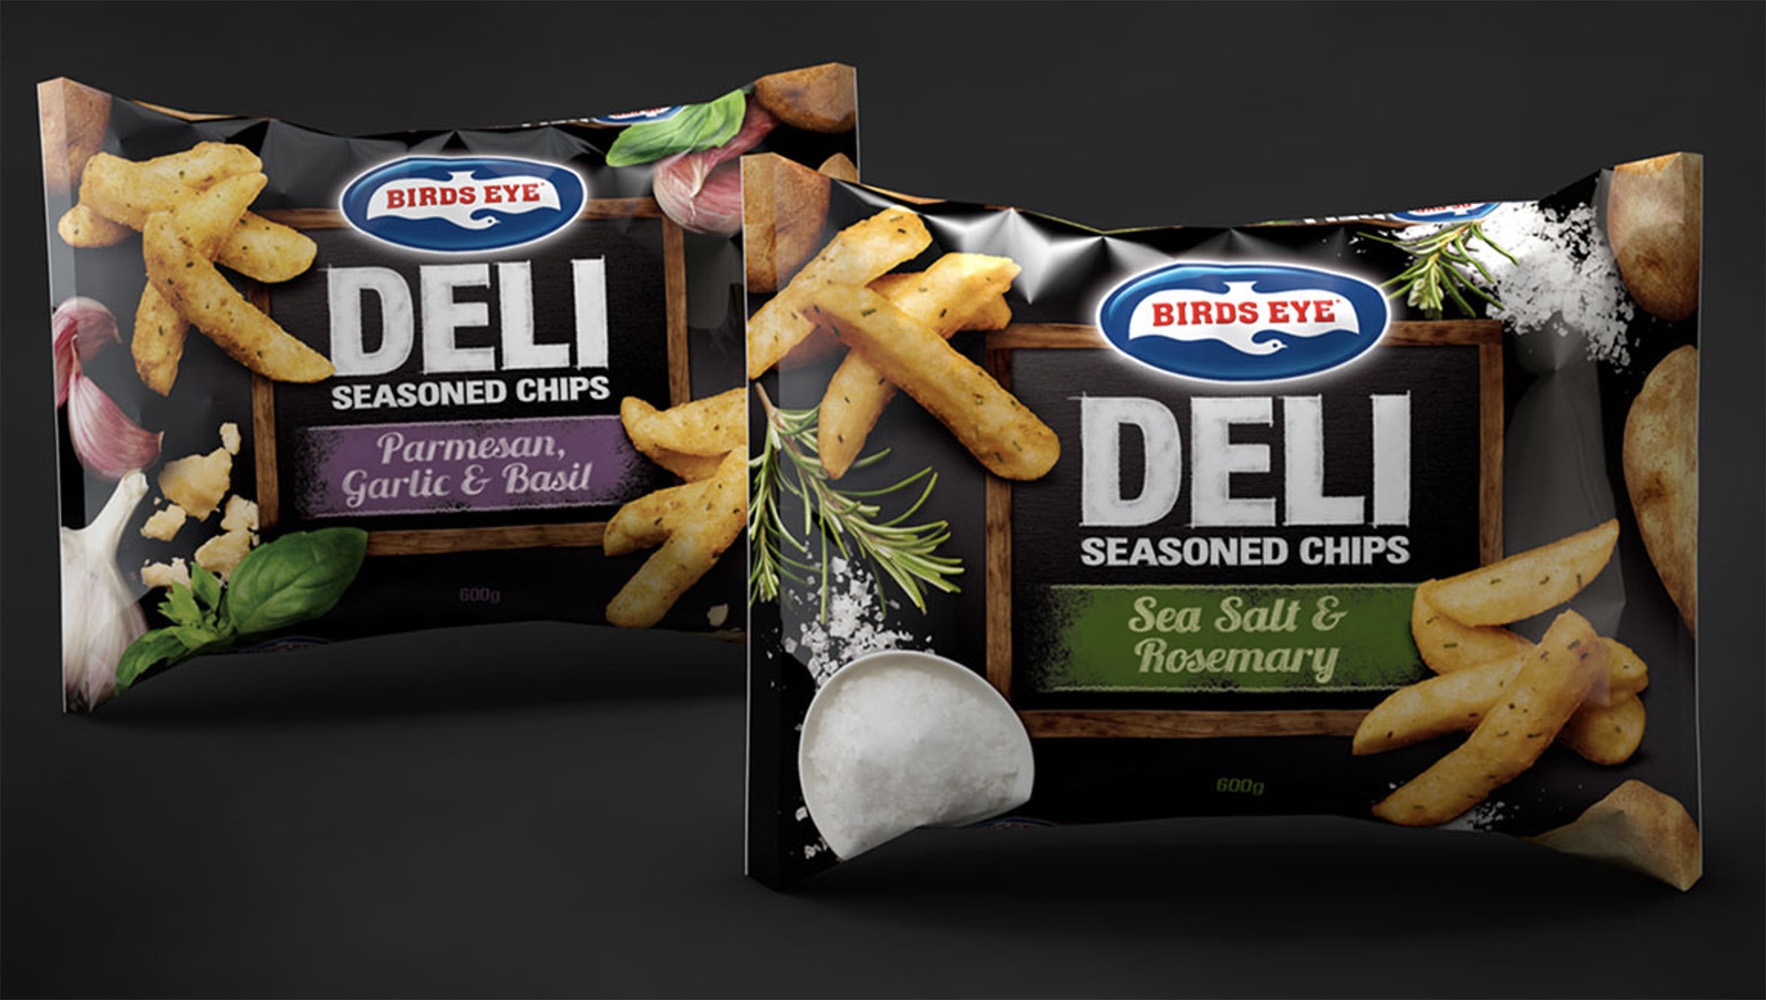 Birds Eye Deli FMCG Packaging Food styling